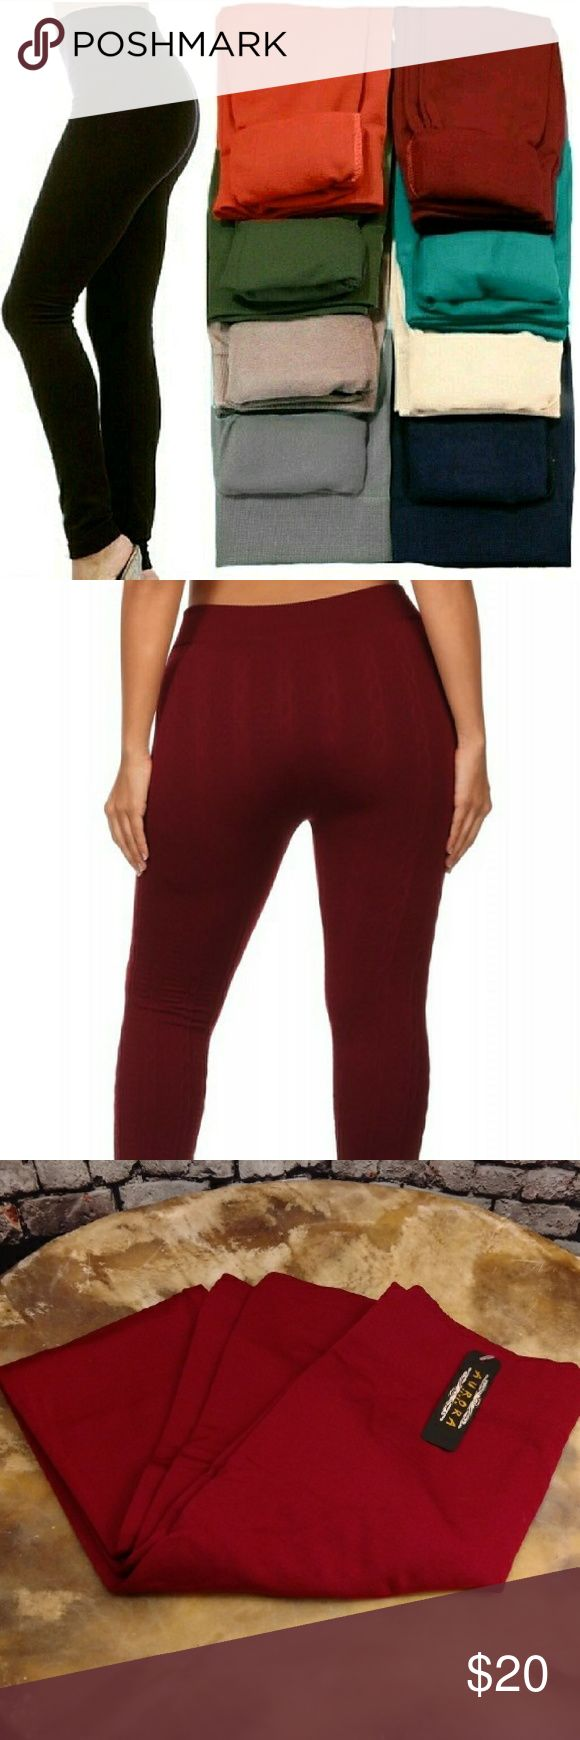 SALE!WINE Fleece Lined Leggings ONE SIZE FITS MOST (best fits S, M, L )  Super soft, very stretchy and stylish fleece leggings \ footless tights. Looks like a regular sleek legging but inside is soft and cozy fleece that is warm & comfy. Warmth and style without bulkiness. 65% Polyester, 20% Cotton, 15% Spandex.  Available in other listings: DK. BROWN, Black, CHARCOAL, MIDNIGHT BLUE & SAND.  Price Firm Unless Bundled No Trades ✔️10% Discount on bundles of 2+ ✔️Gift with purchase of 3…